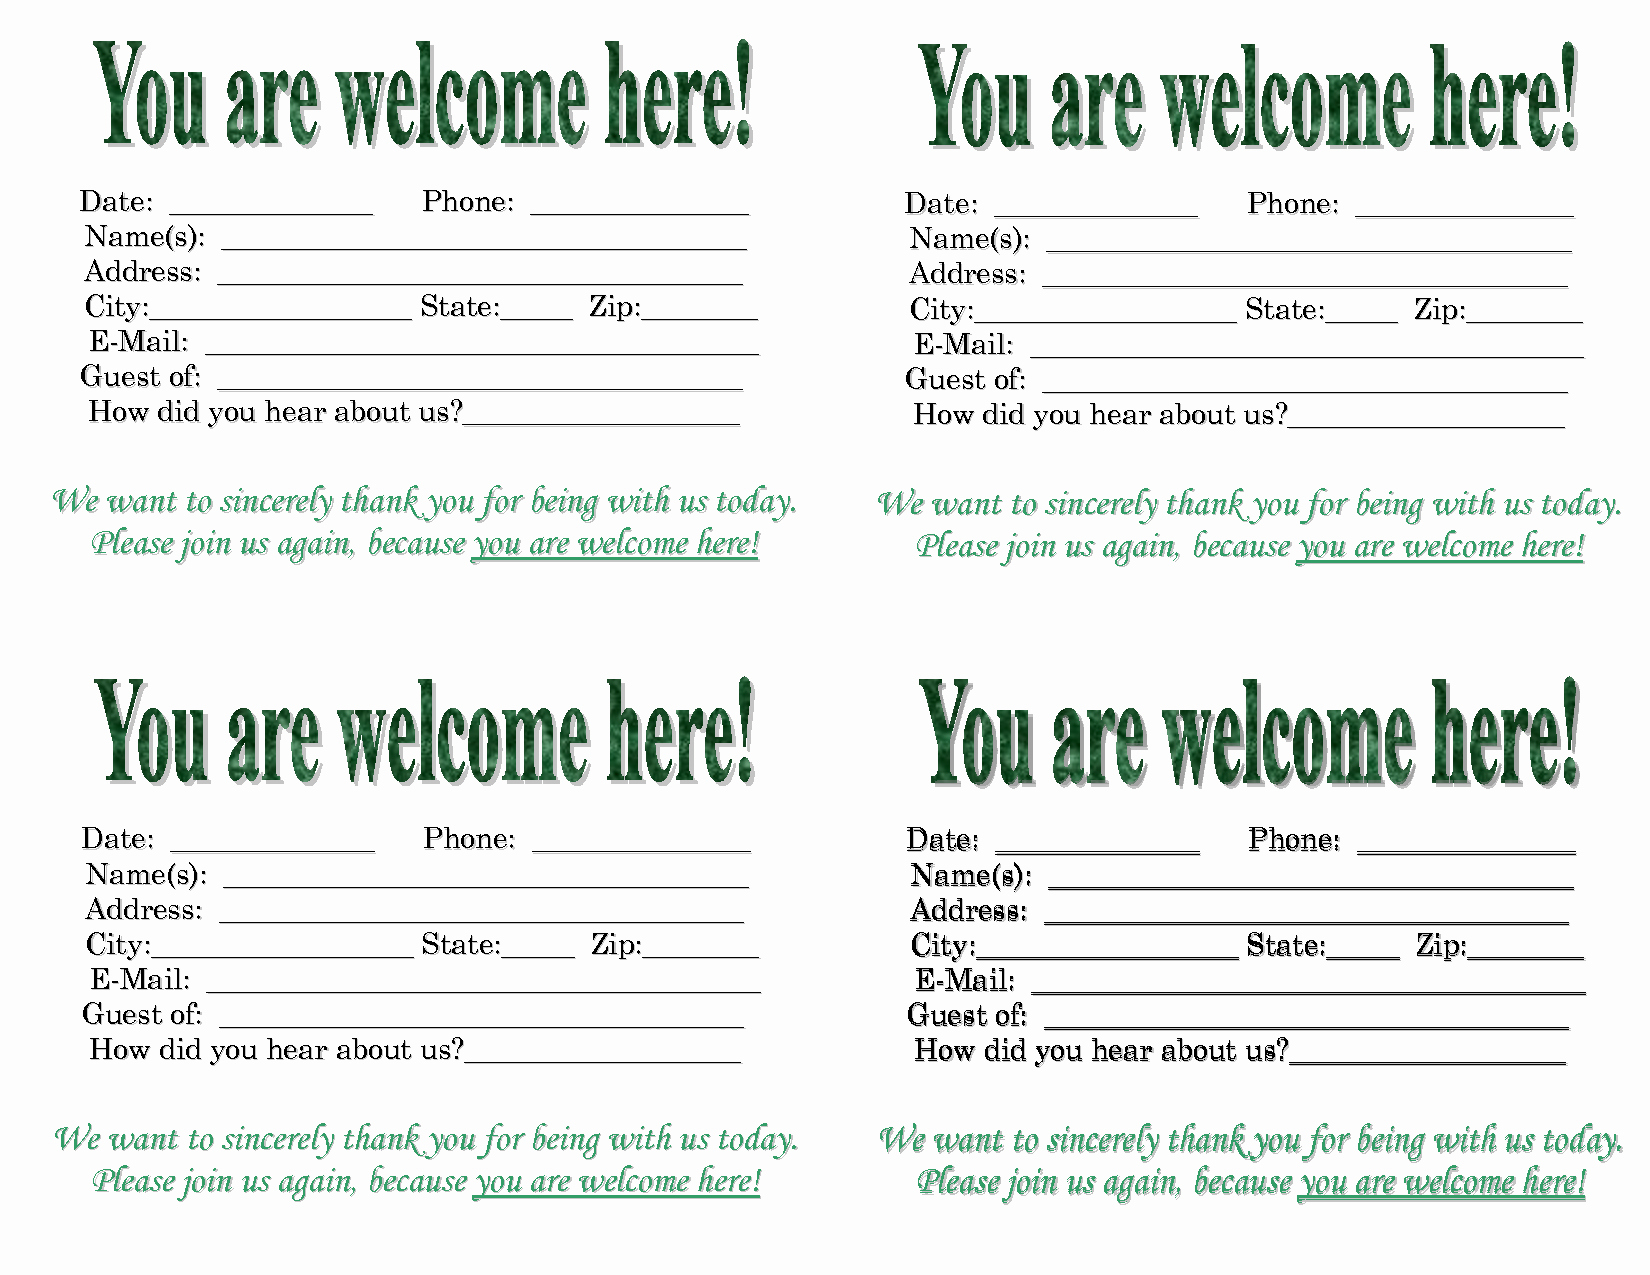 Free Printable Welcome Cards Download Example - Tduck.ca - Free Printable Welcome Cards